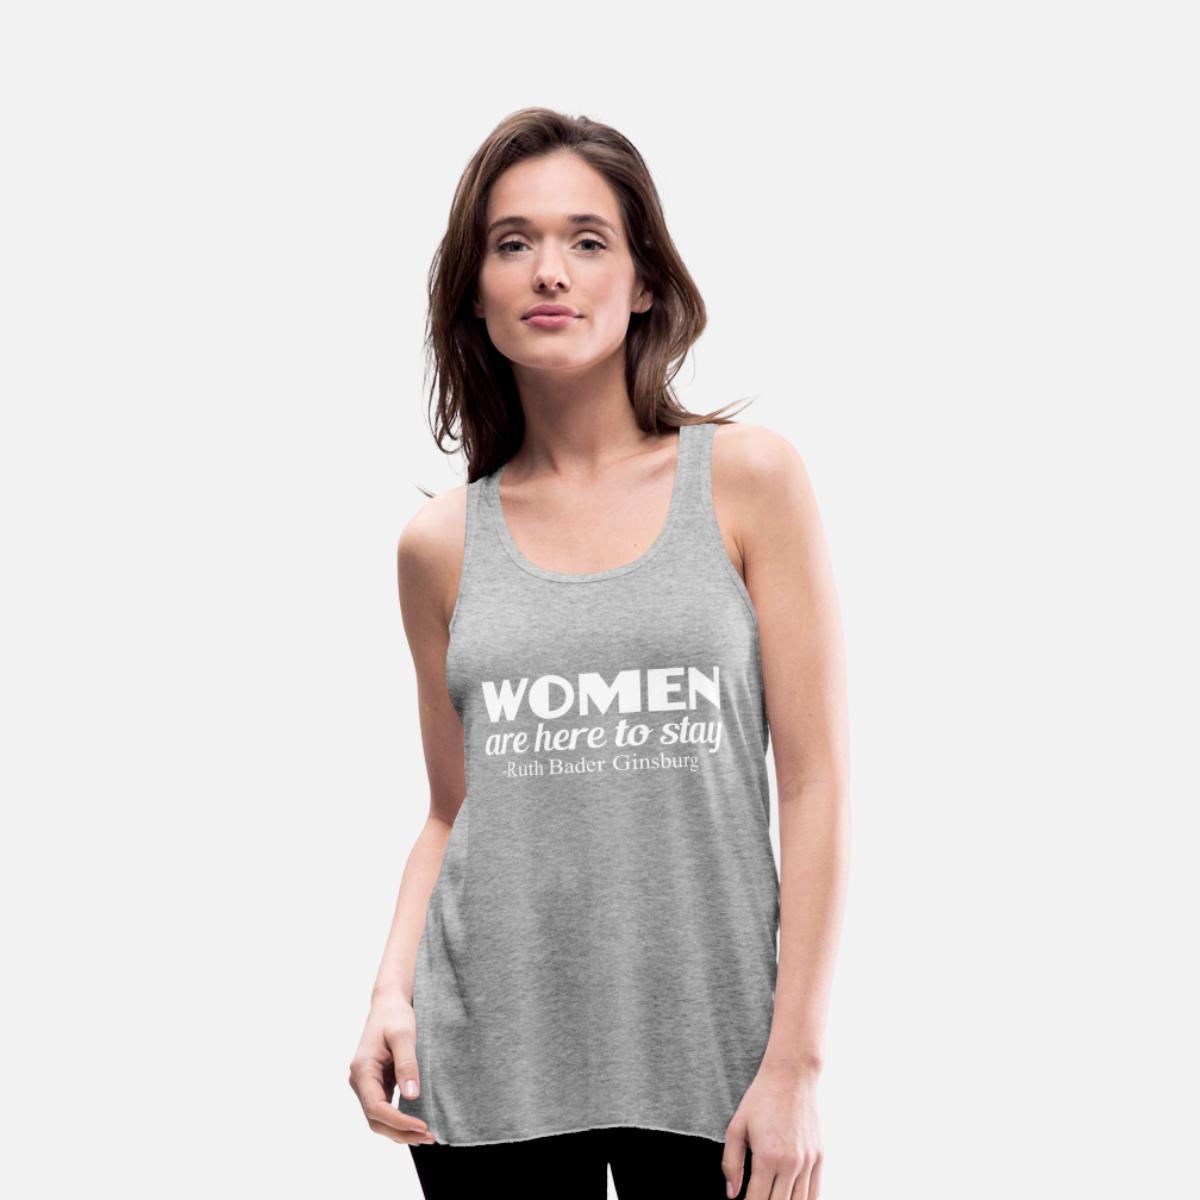 f68bdea3a5 Womens Rights RBG Feminist Quote Women's Flowy Tank Top | Spreadshirt